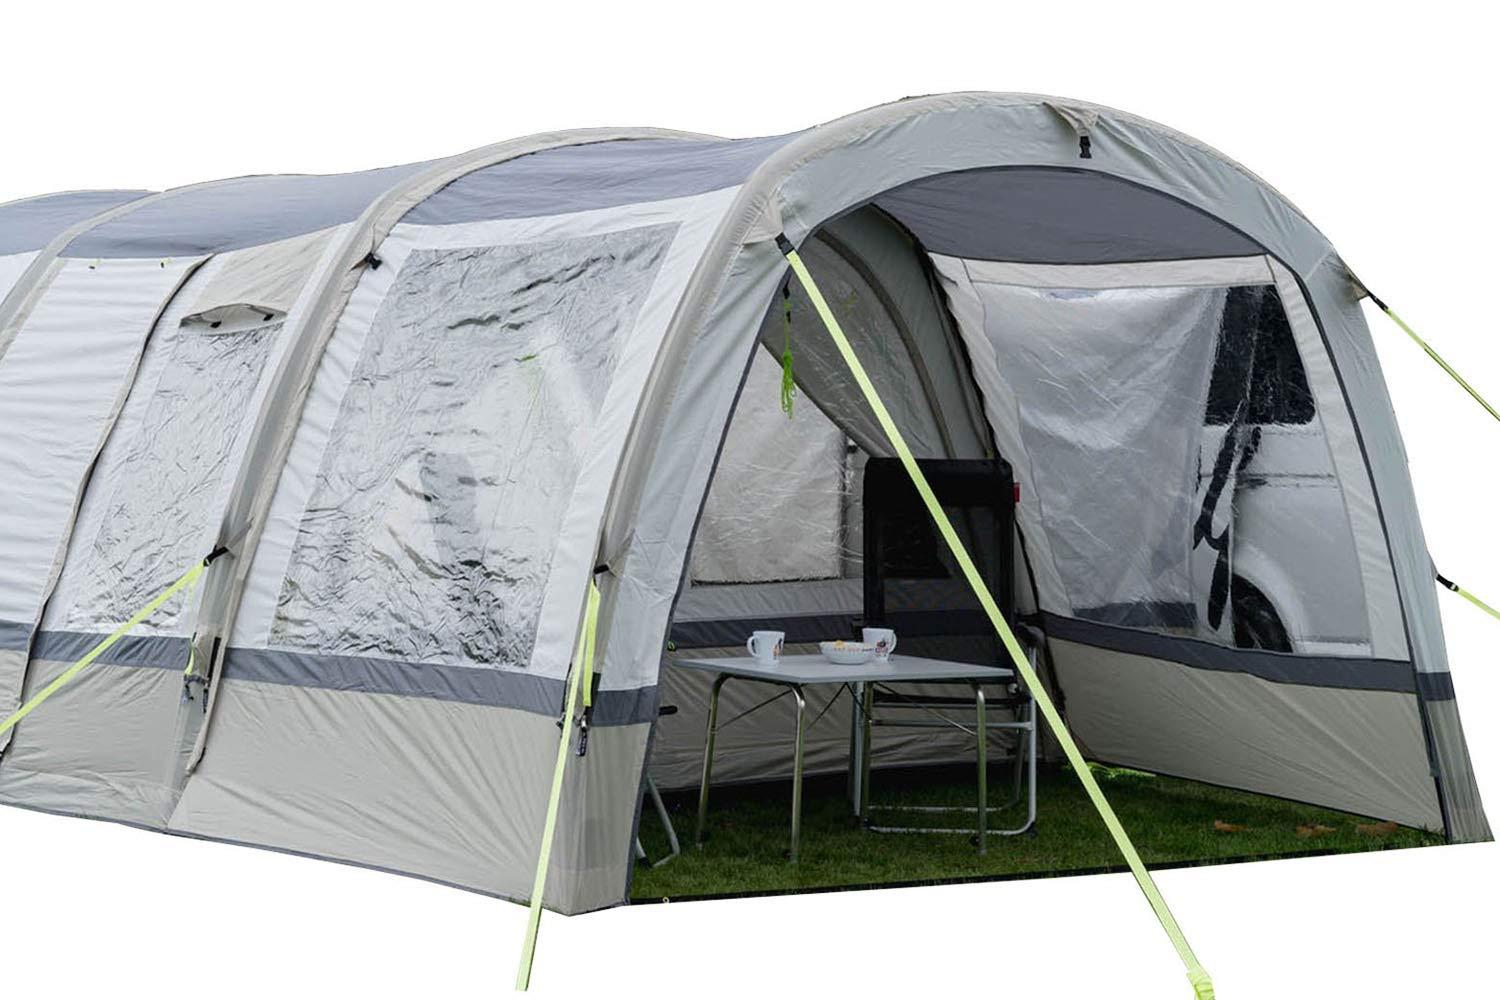 OLPRO Outdoor Leisure Products Cocoon Extension 3.5m x 1.8m Inflatable Drive Away Campervan Awning Porch Extension for Cocoon Breeze Sage Green & Chalk 1